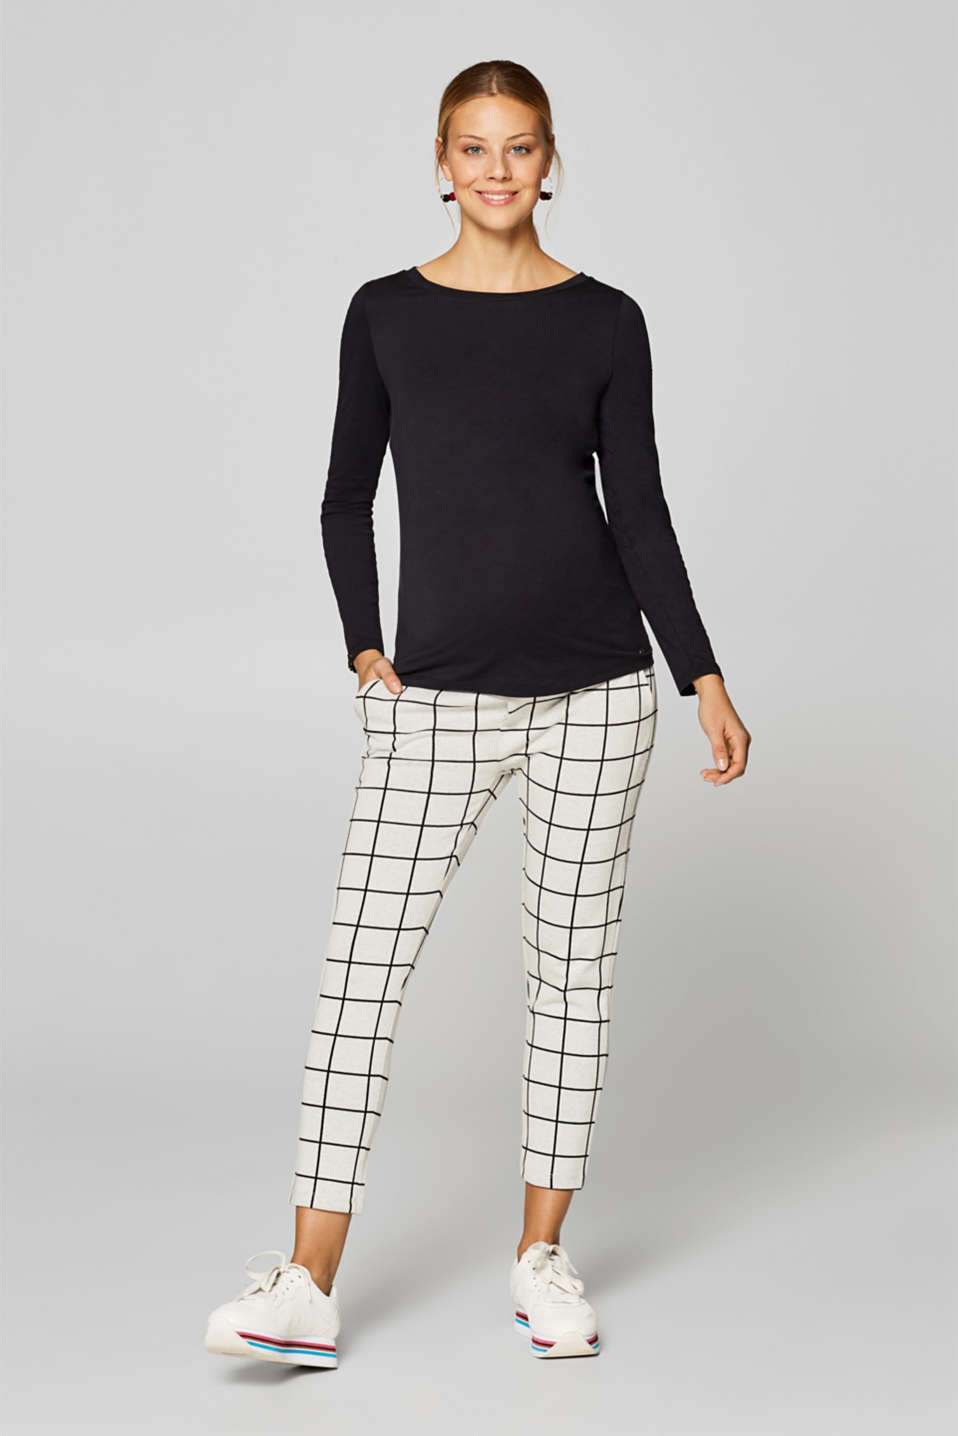 Esprit - Stretch jersey trousers with an under-bump waistband